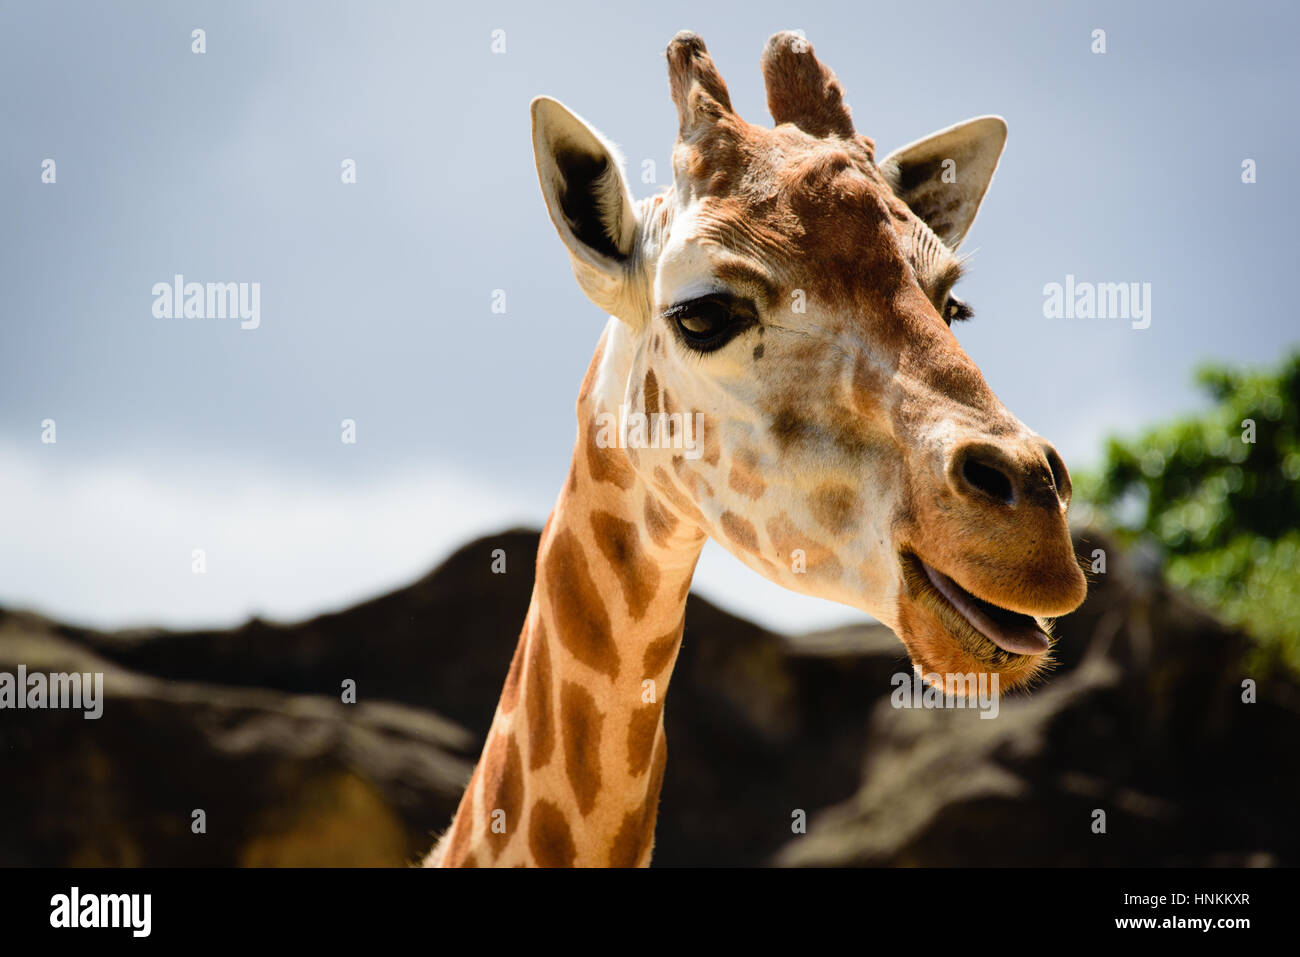 Giraffe face close-up, at Sydney zoo - Stock Image